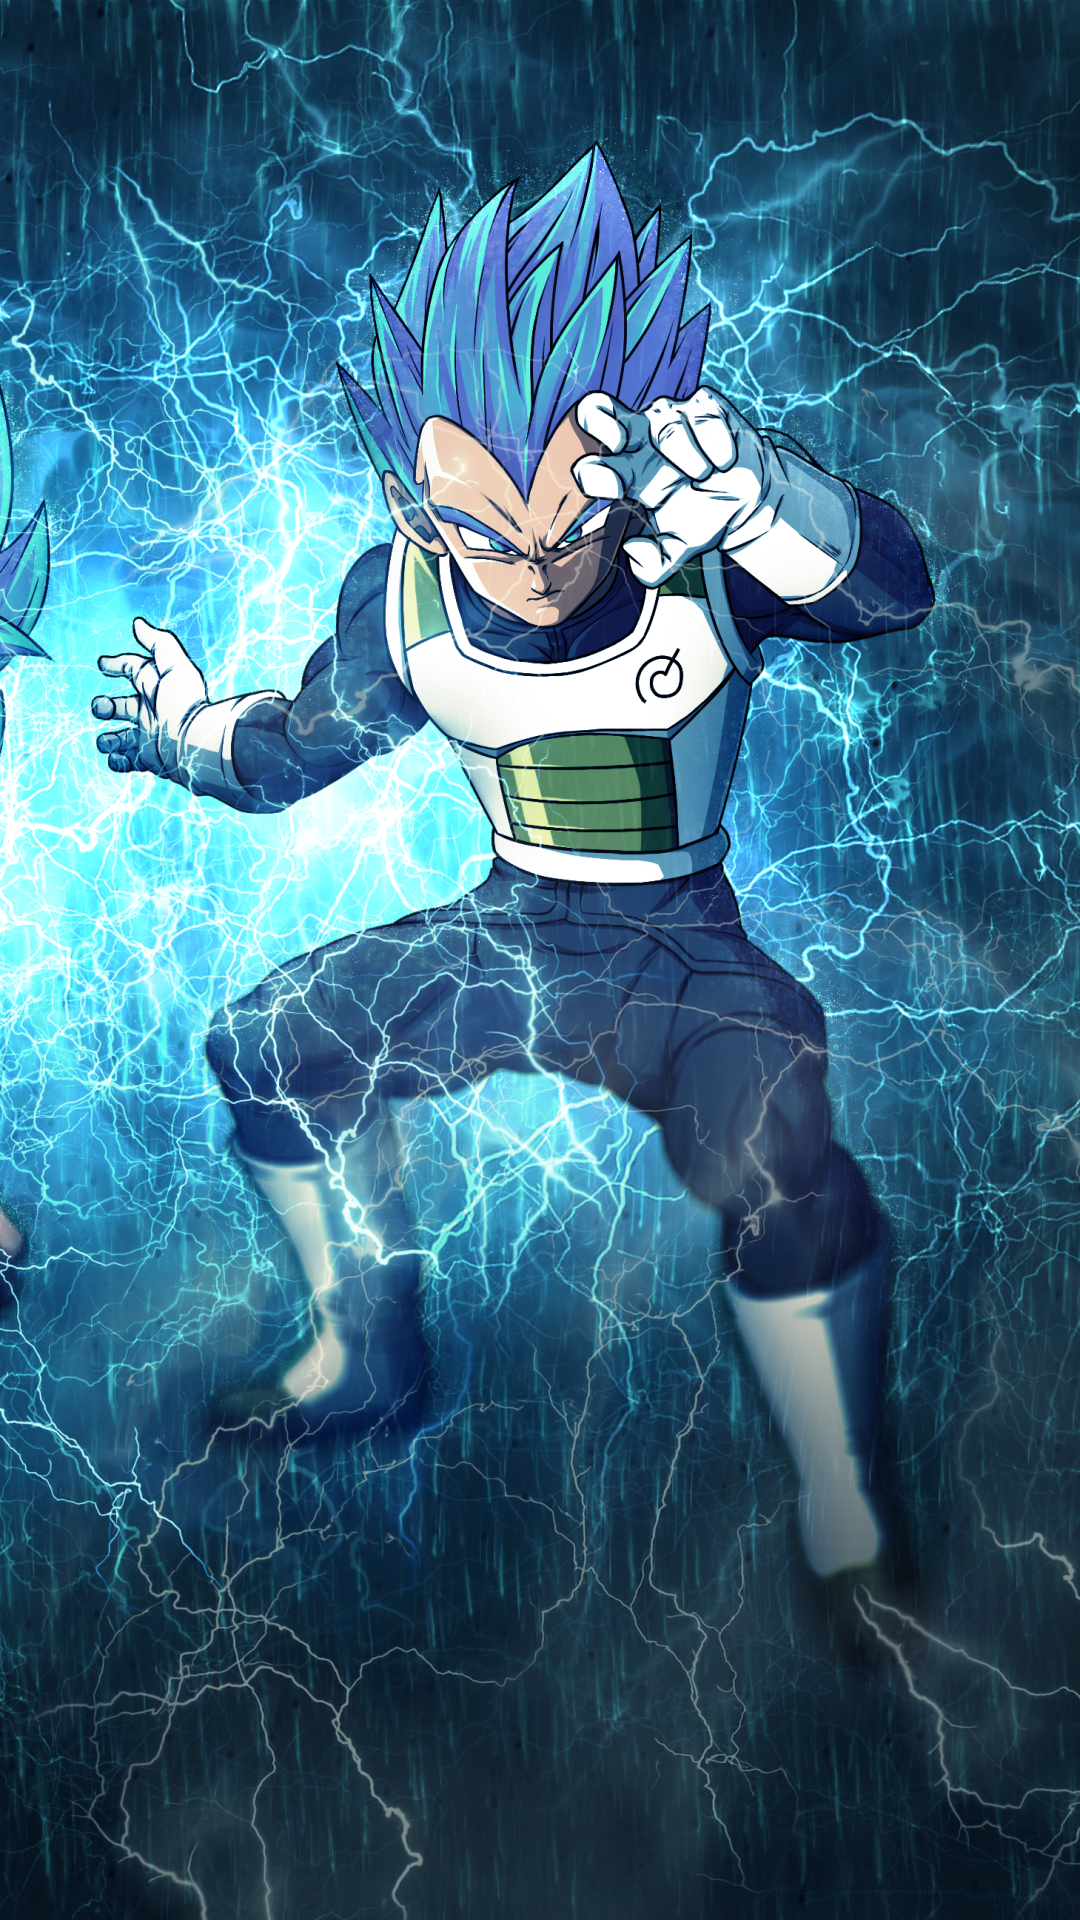 540 Dragon Ball Super Appleiphone 7 Plus 1080x1920